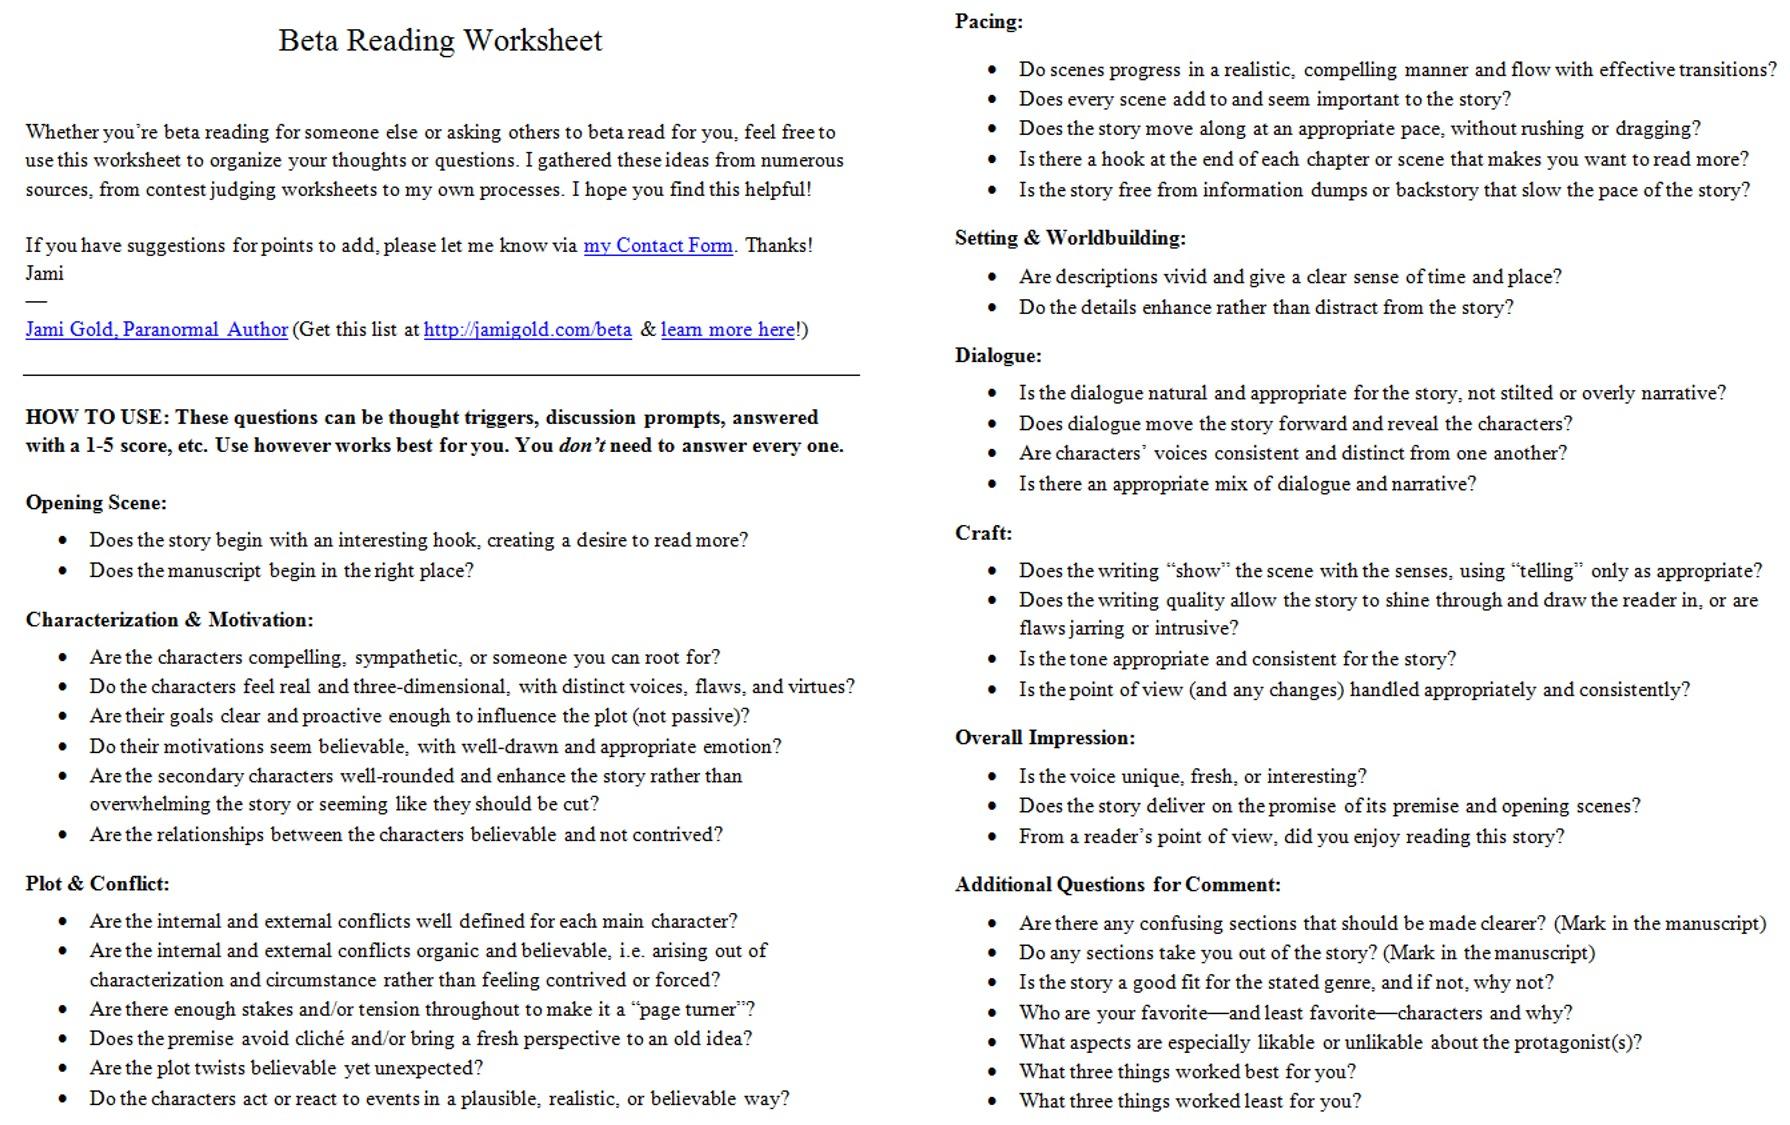 Weirdmailus  Stunning Worksheets For Writers  Jami Gold Paranormal Author With Entrancing Screen Shot Of The Twopage Beta Reading Worksheet With Divine Reading Grade  Worksheets Also X Table Worksheet In Addition English Verb Worksheets And Vowel Letters Worksheet As Well As Assertiveness Skills Worksheets Additionally Kindergarten Patterns Worksheets From Jamigoldcom With Weirdmailus  Entrancing Worksheets For Writers  Jami Gold Paranormal Author With Divine Screen Shot Of The Twopage Beta Reading Worksheet And Stunning Reading Grade  Worksheets Also X Table Worksheet In Addition English Verb Worksheets From Jamigoldcom